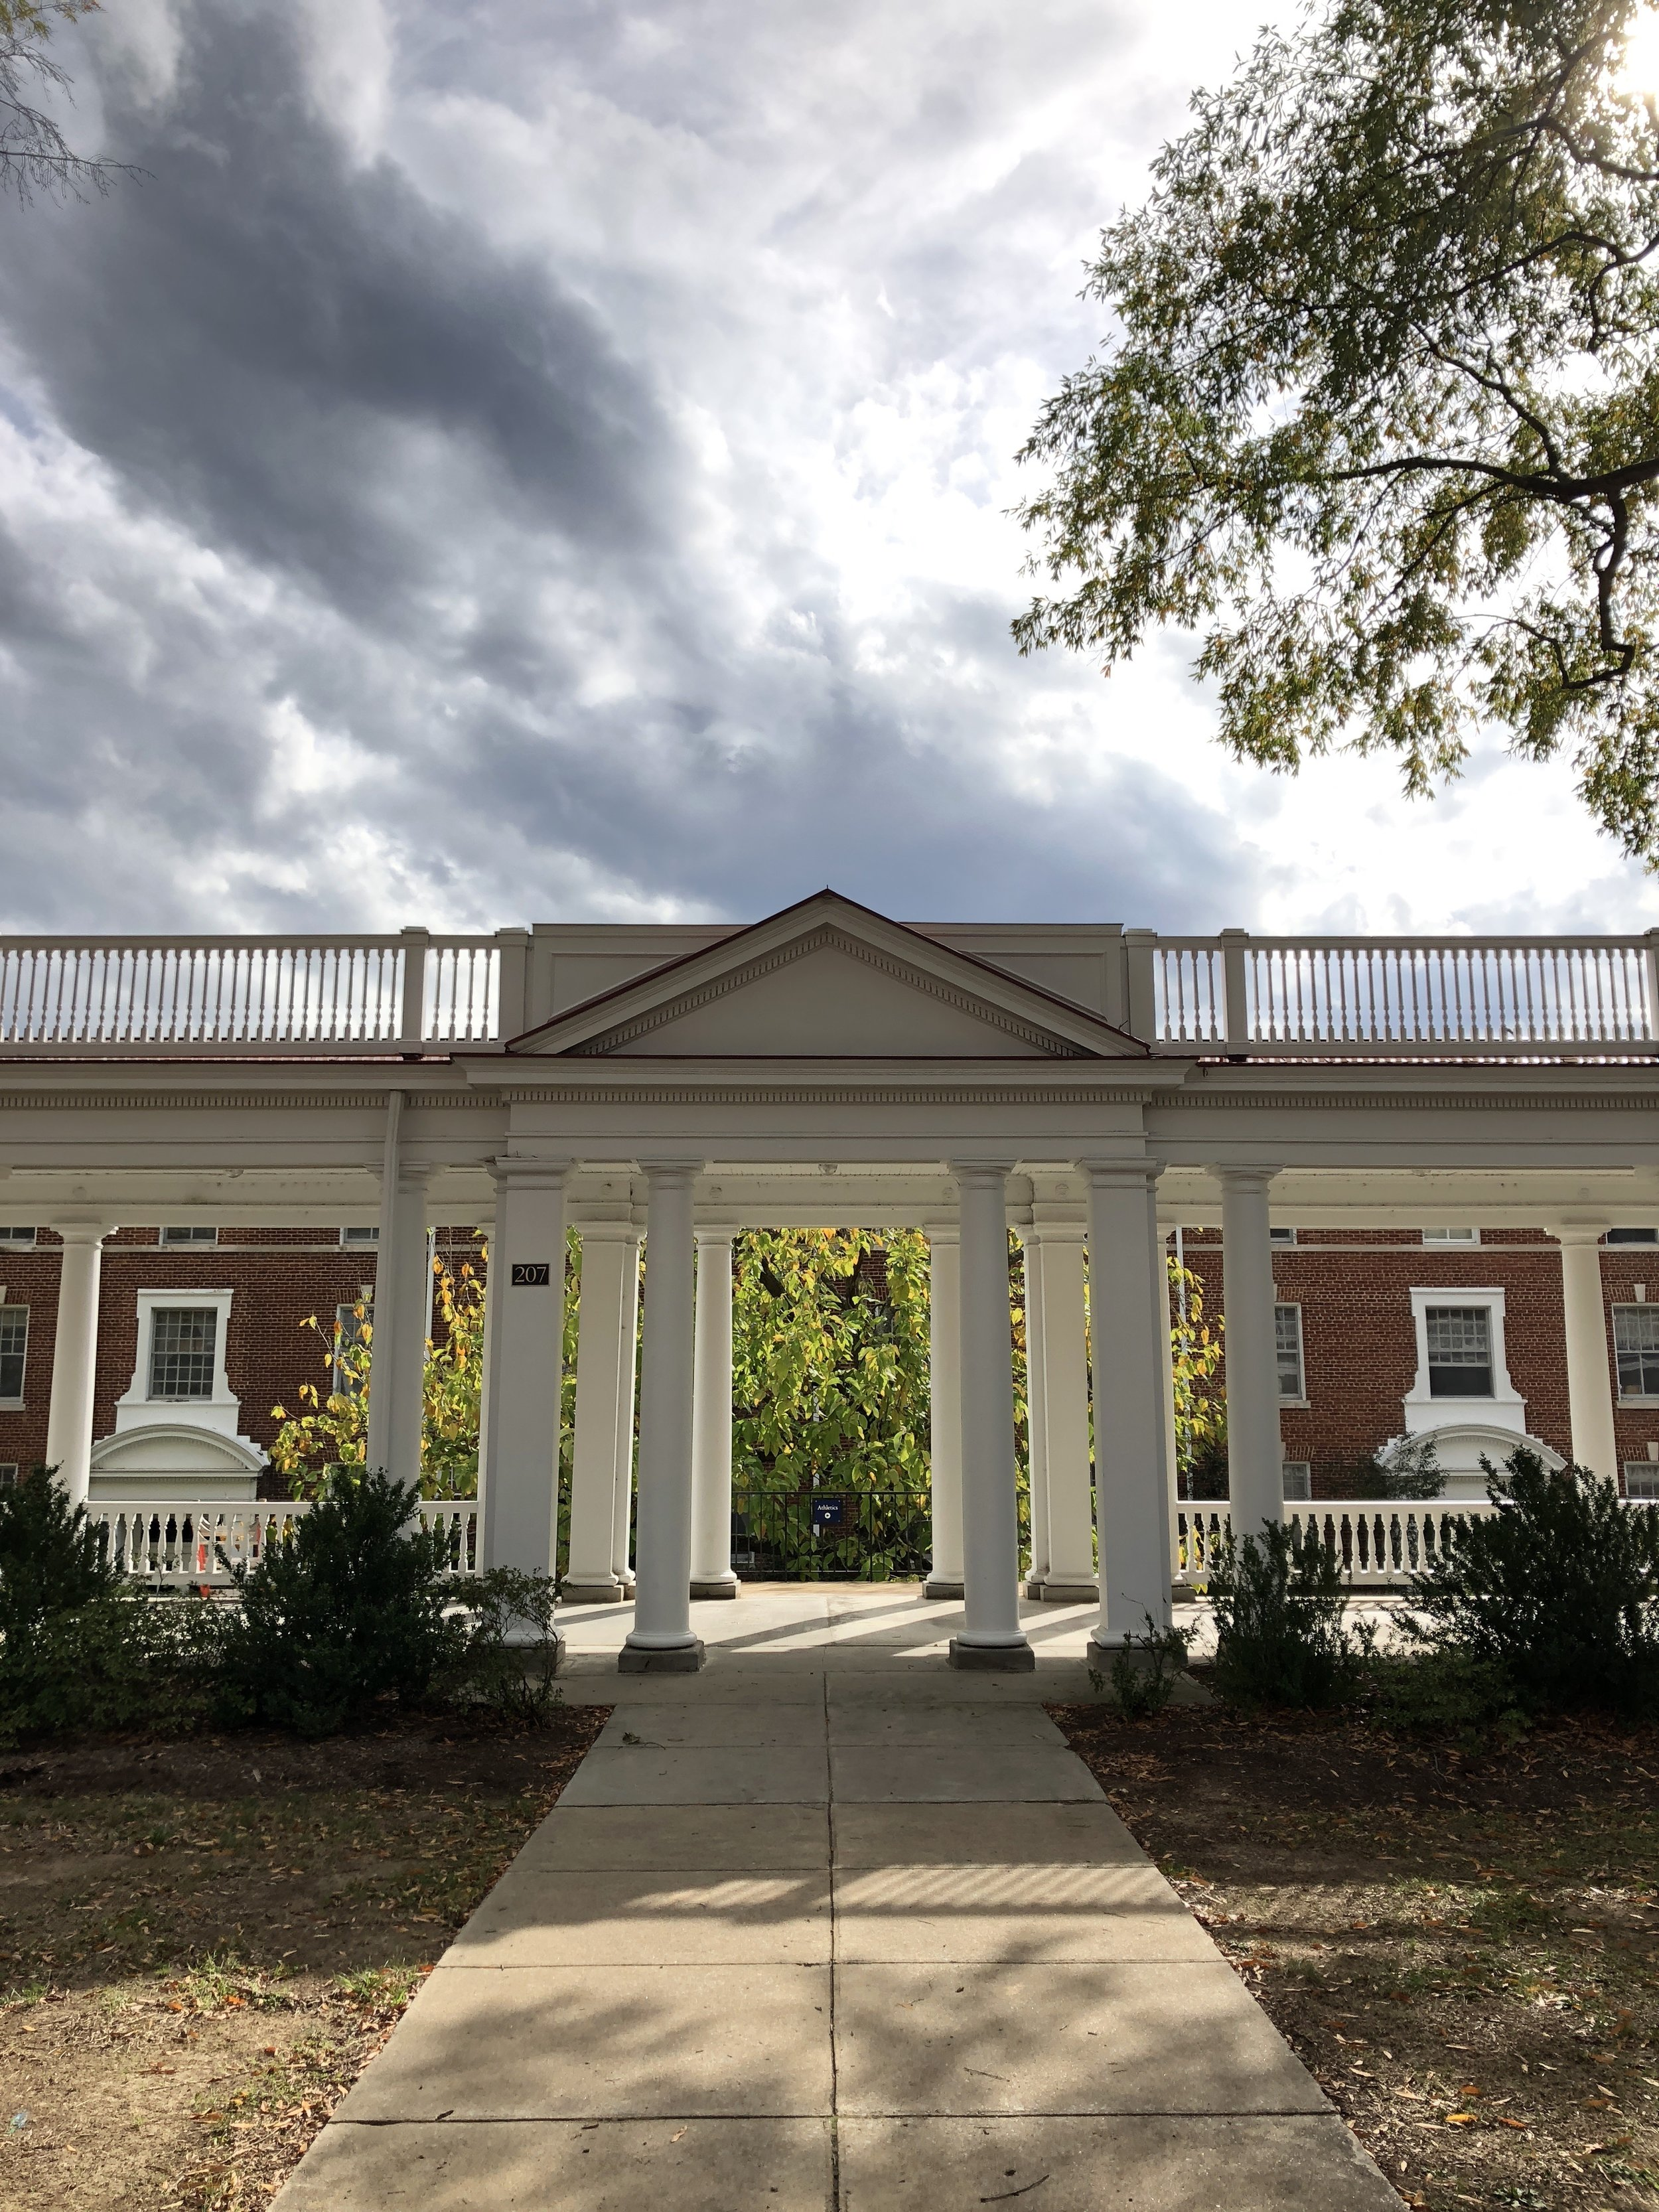 Longwood University. This looks like a portal to another world.